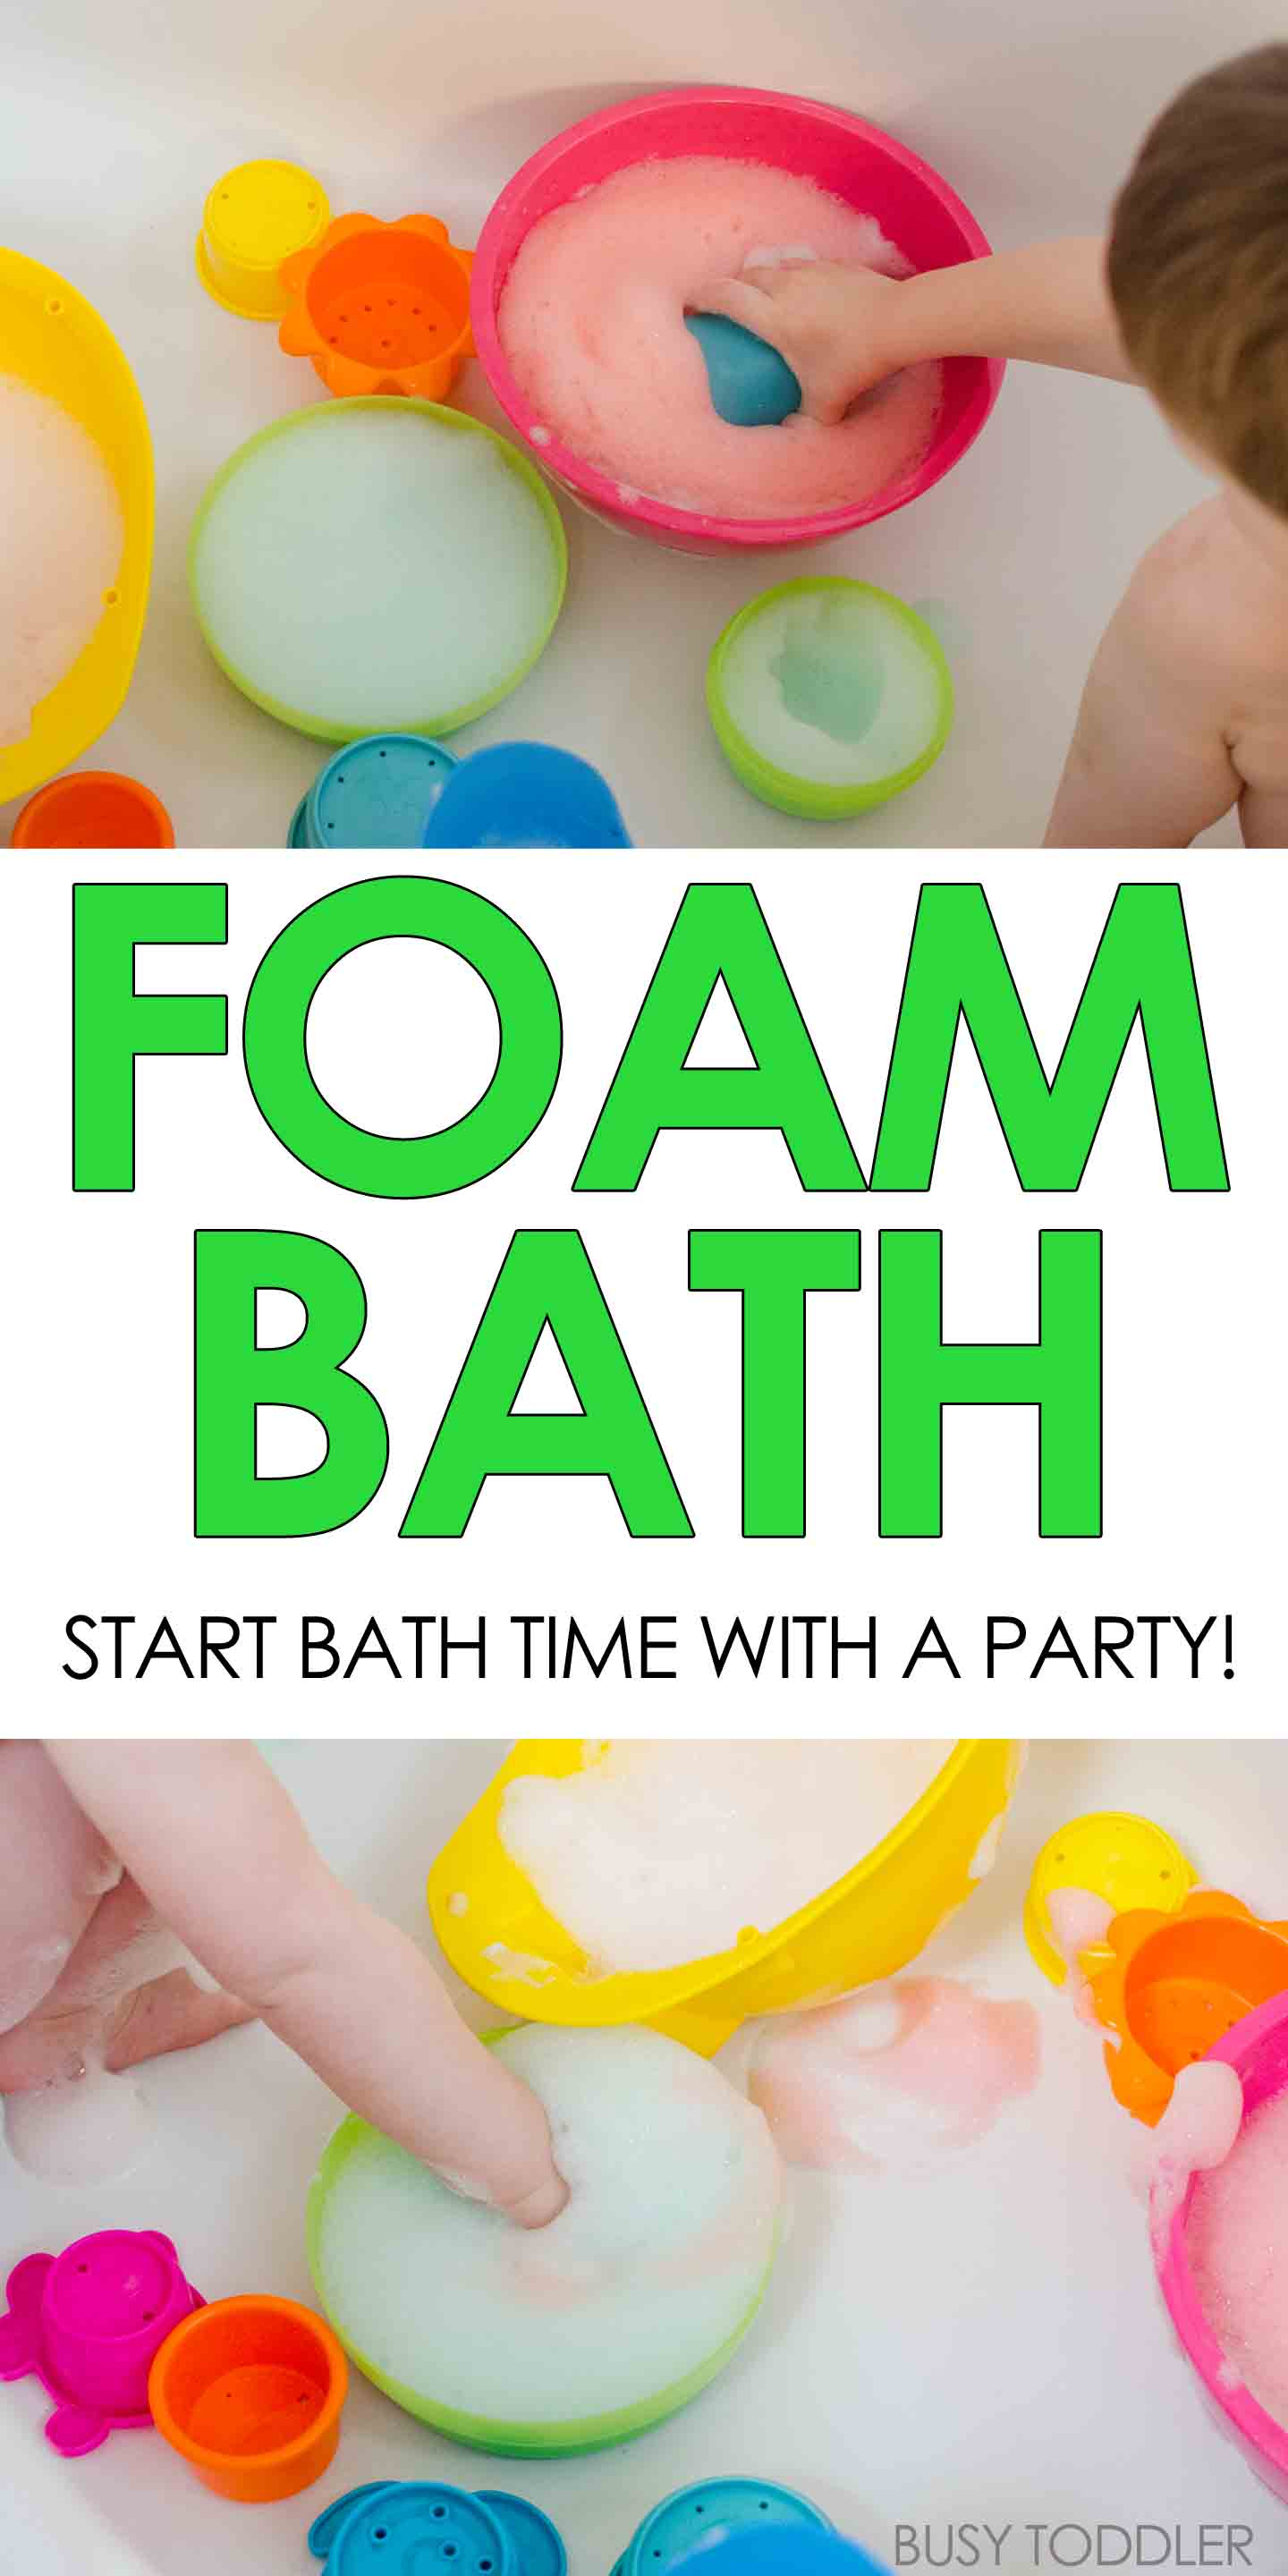 Foam Bath - Busy Toddler